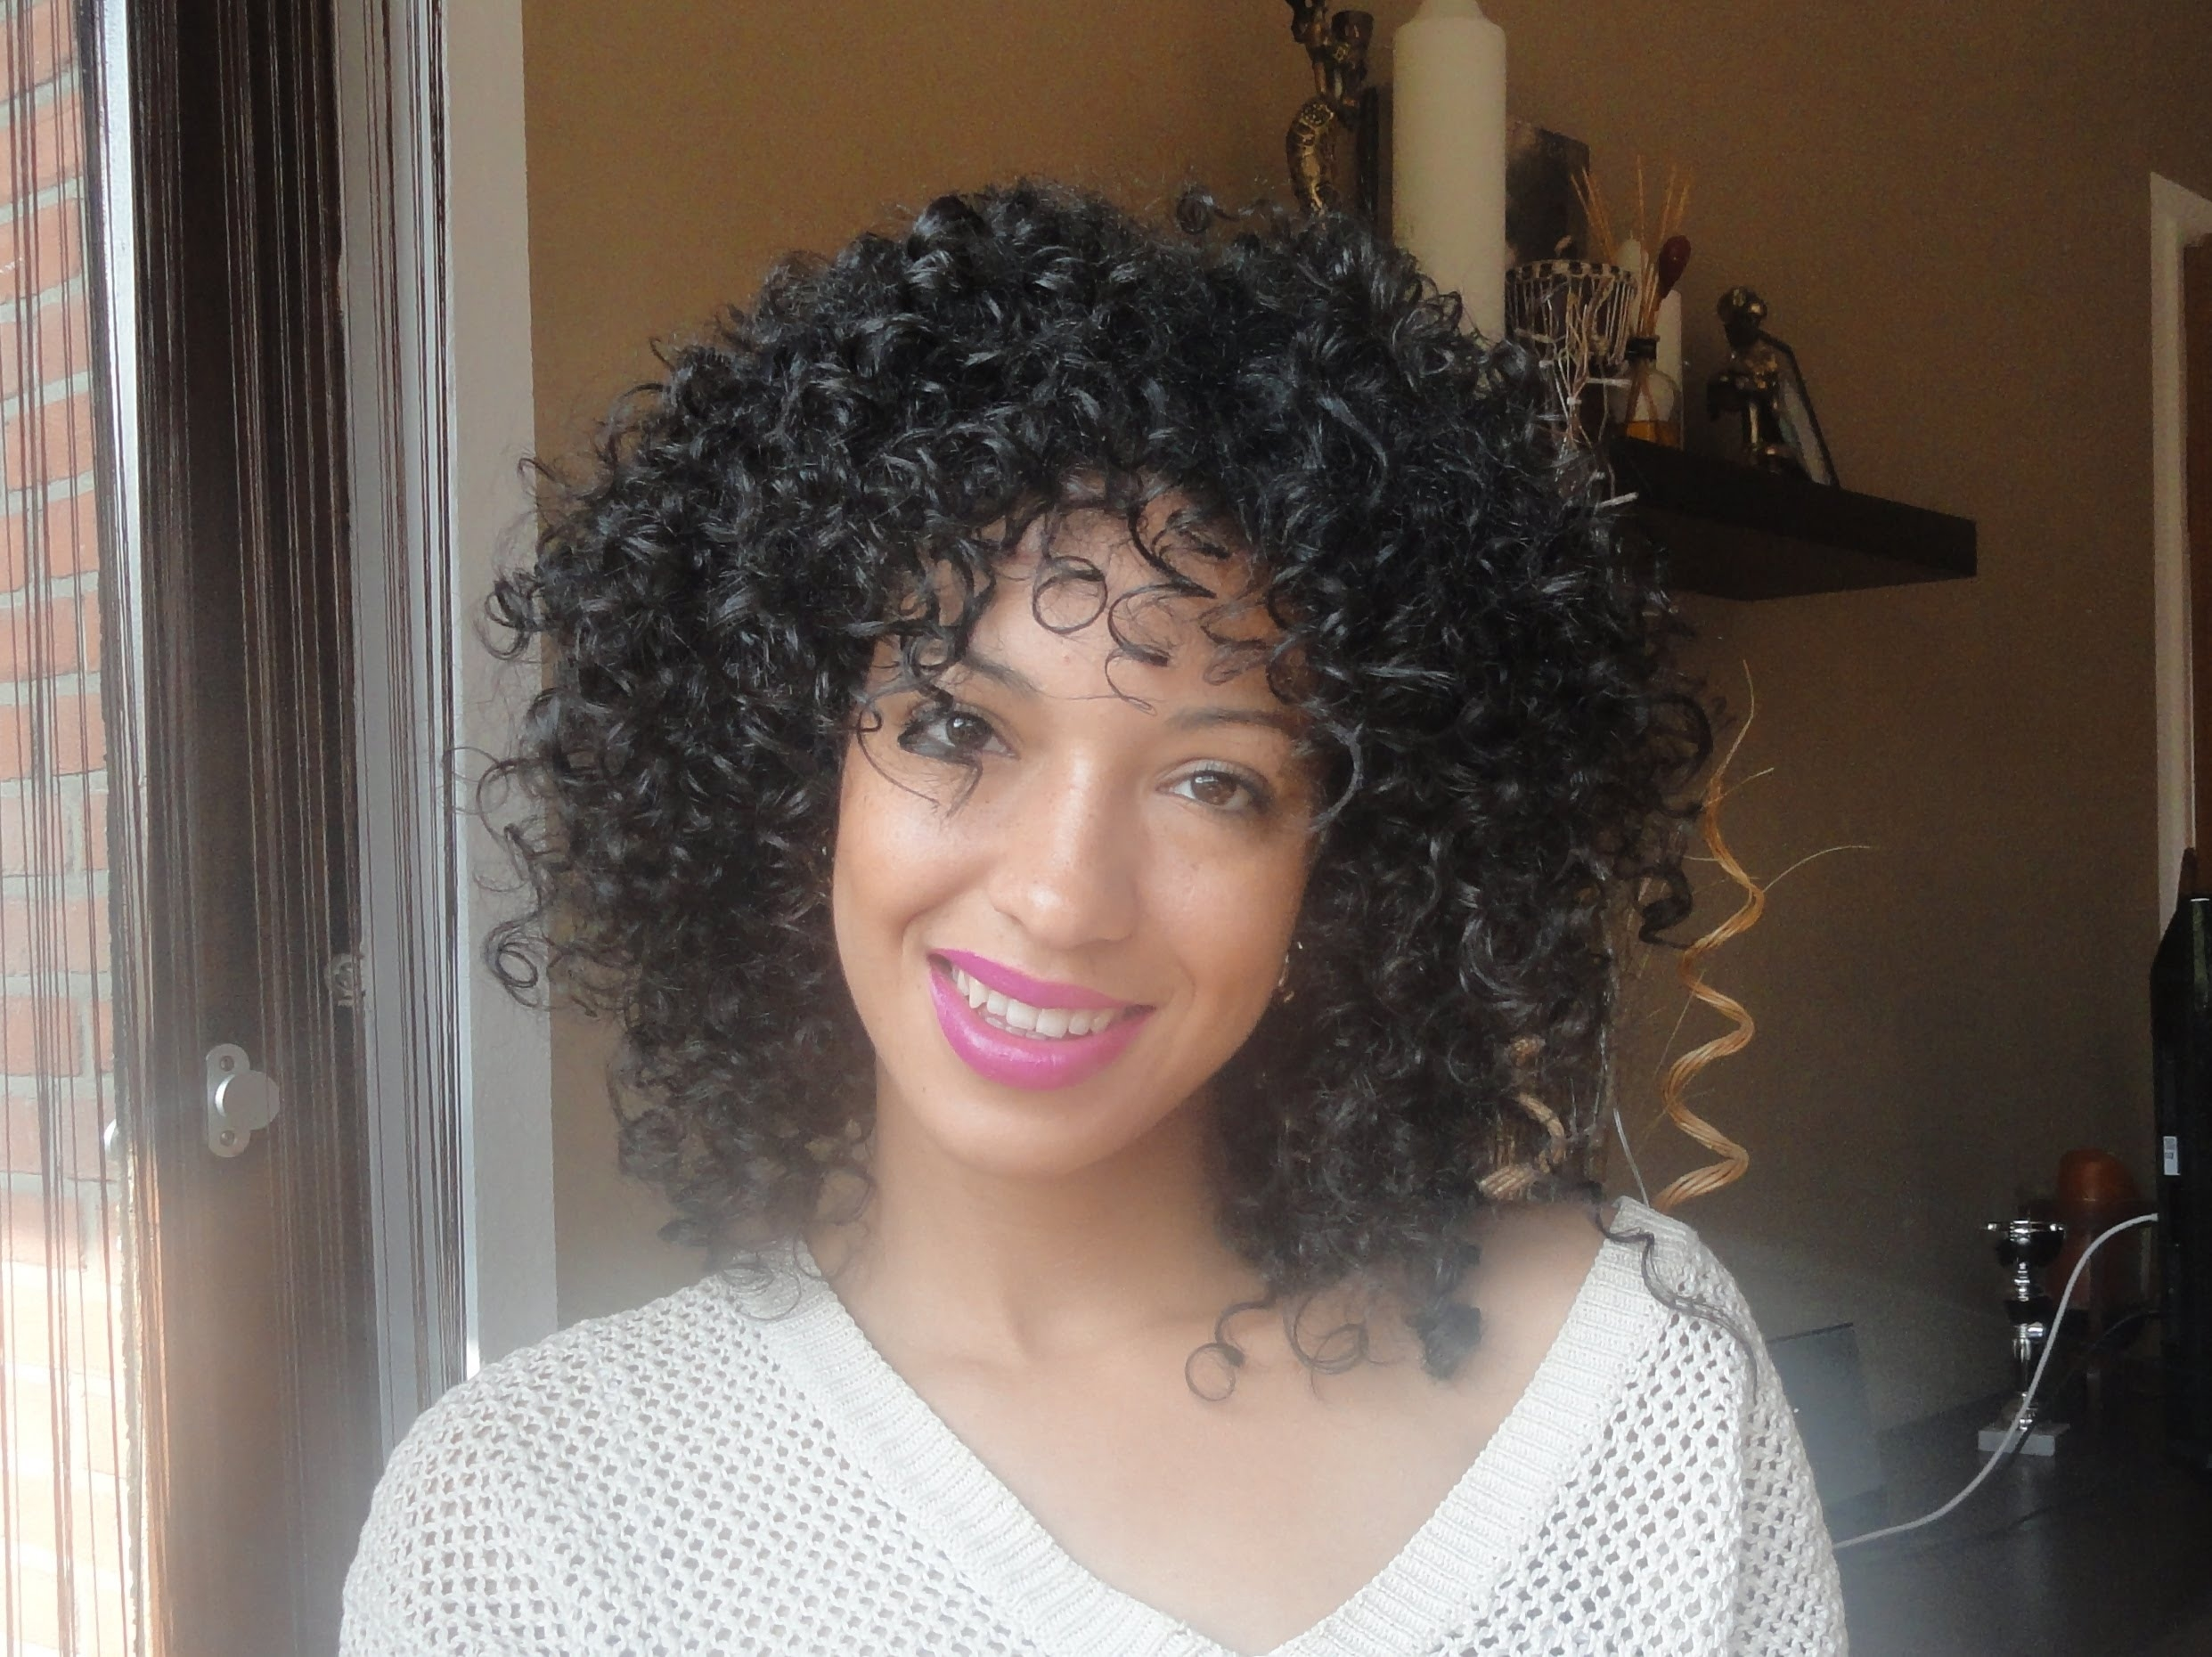 Ouidad Carve And Slice Curly Cut Review - Youtube throughout Haircuts For Curly Hair Denver